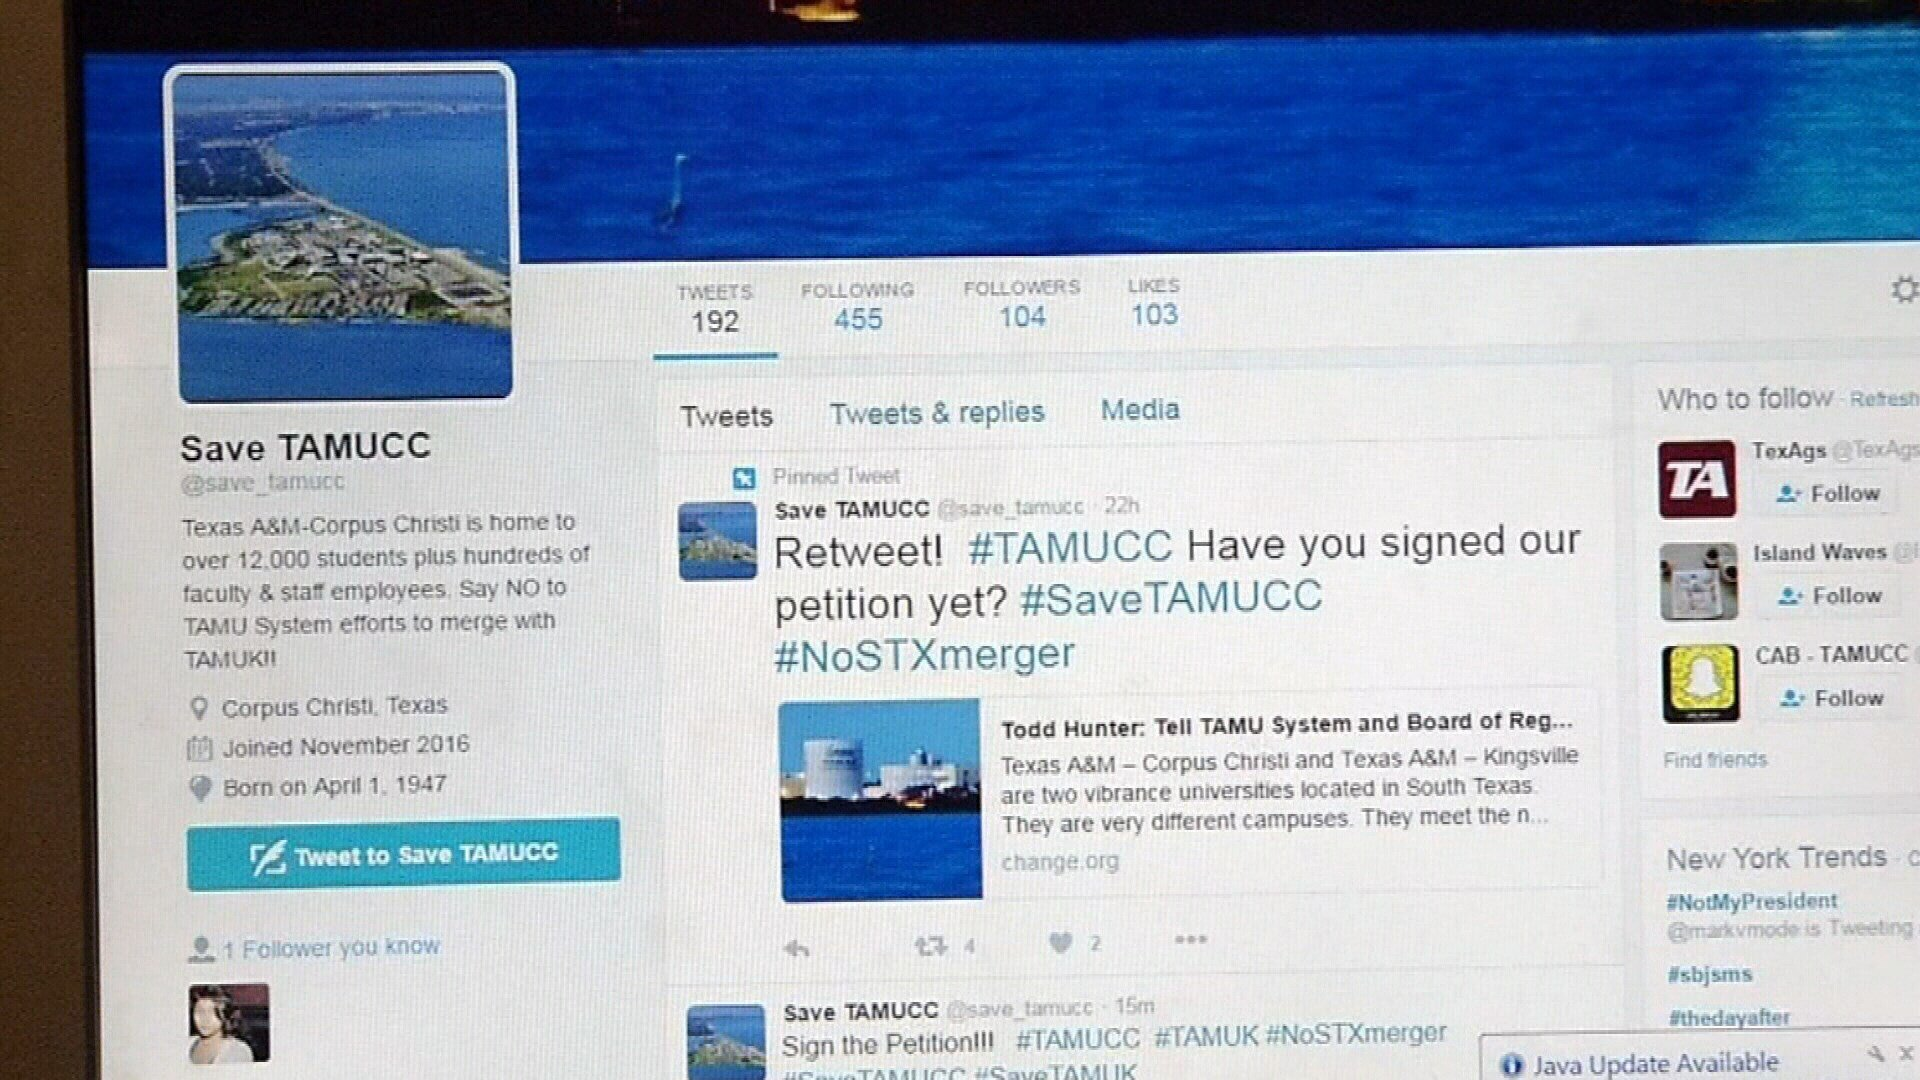 Save TAMUCC Twitter followers share concerns about merger prop